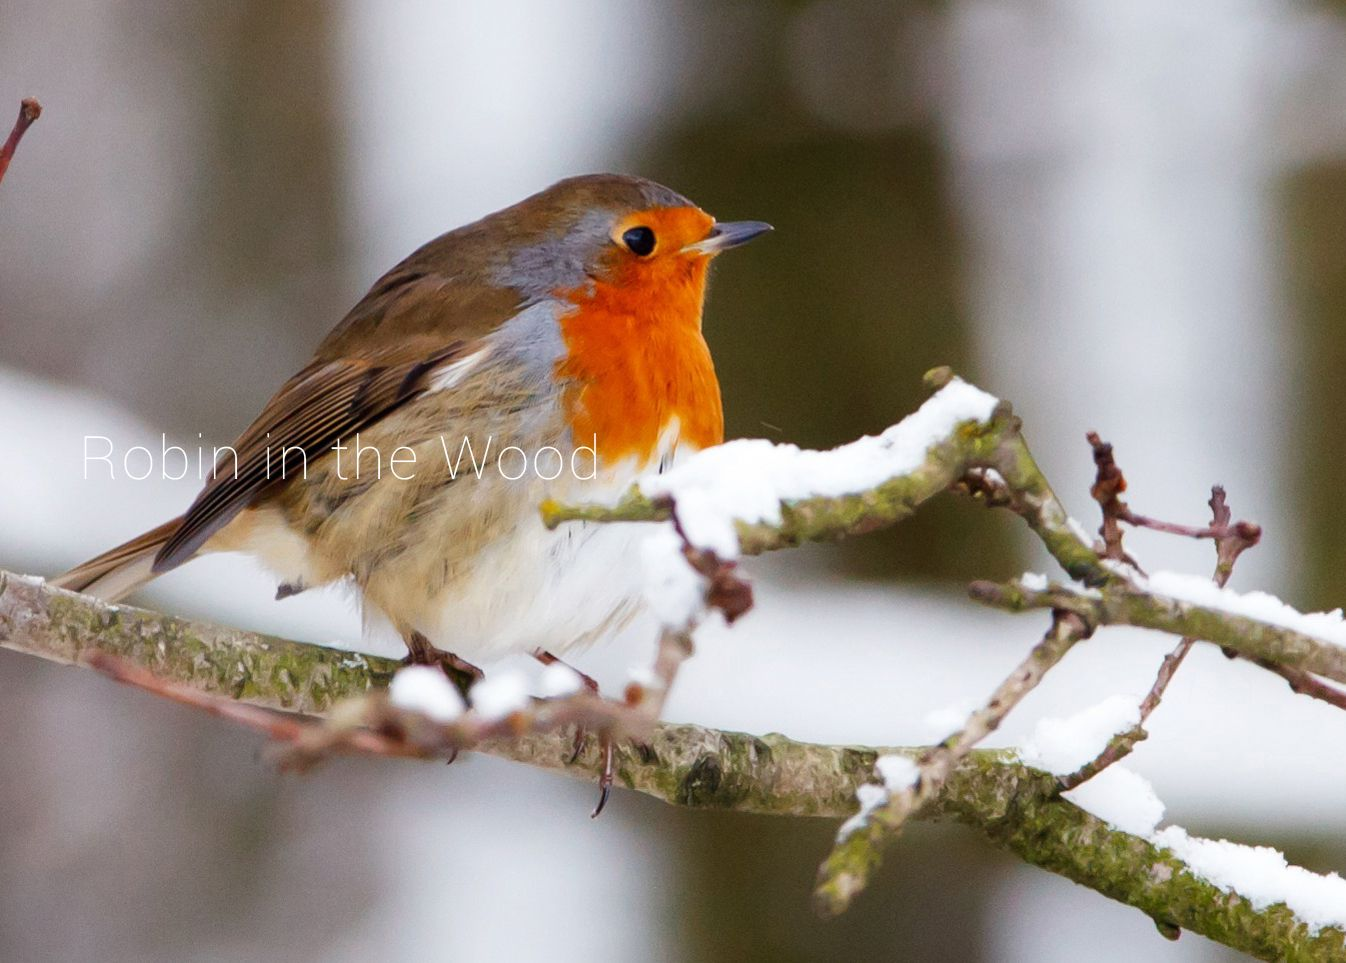 Robin in the Wood